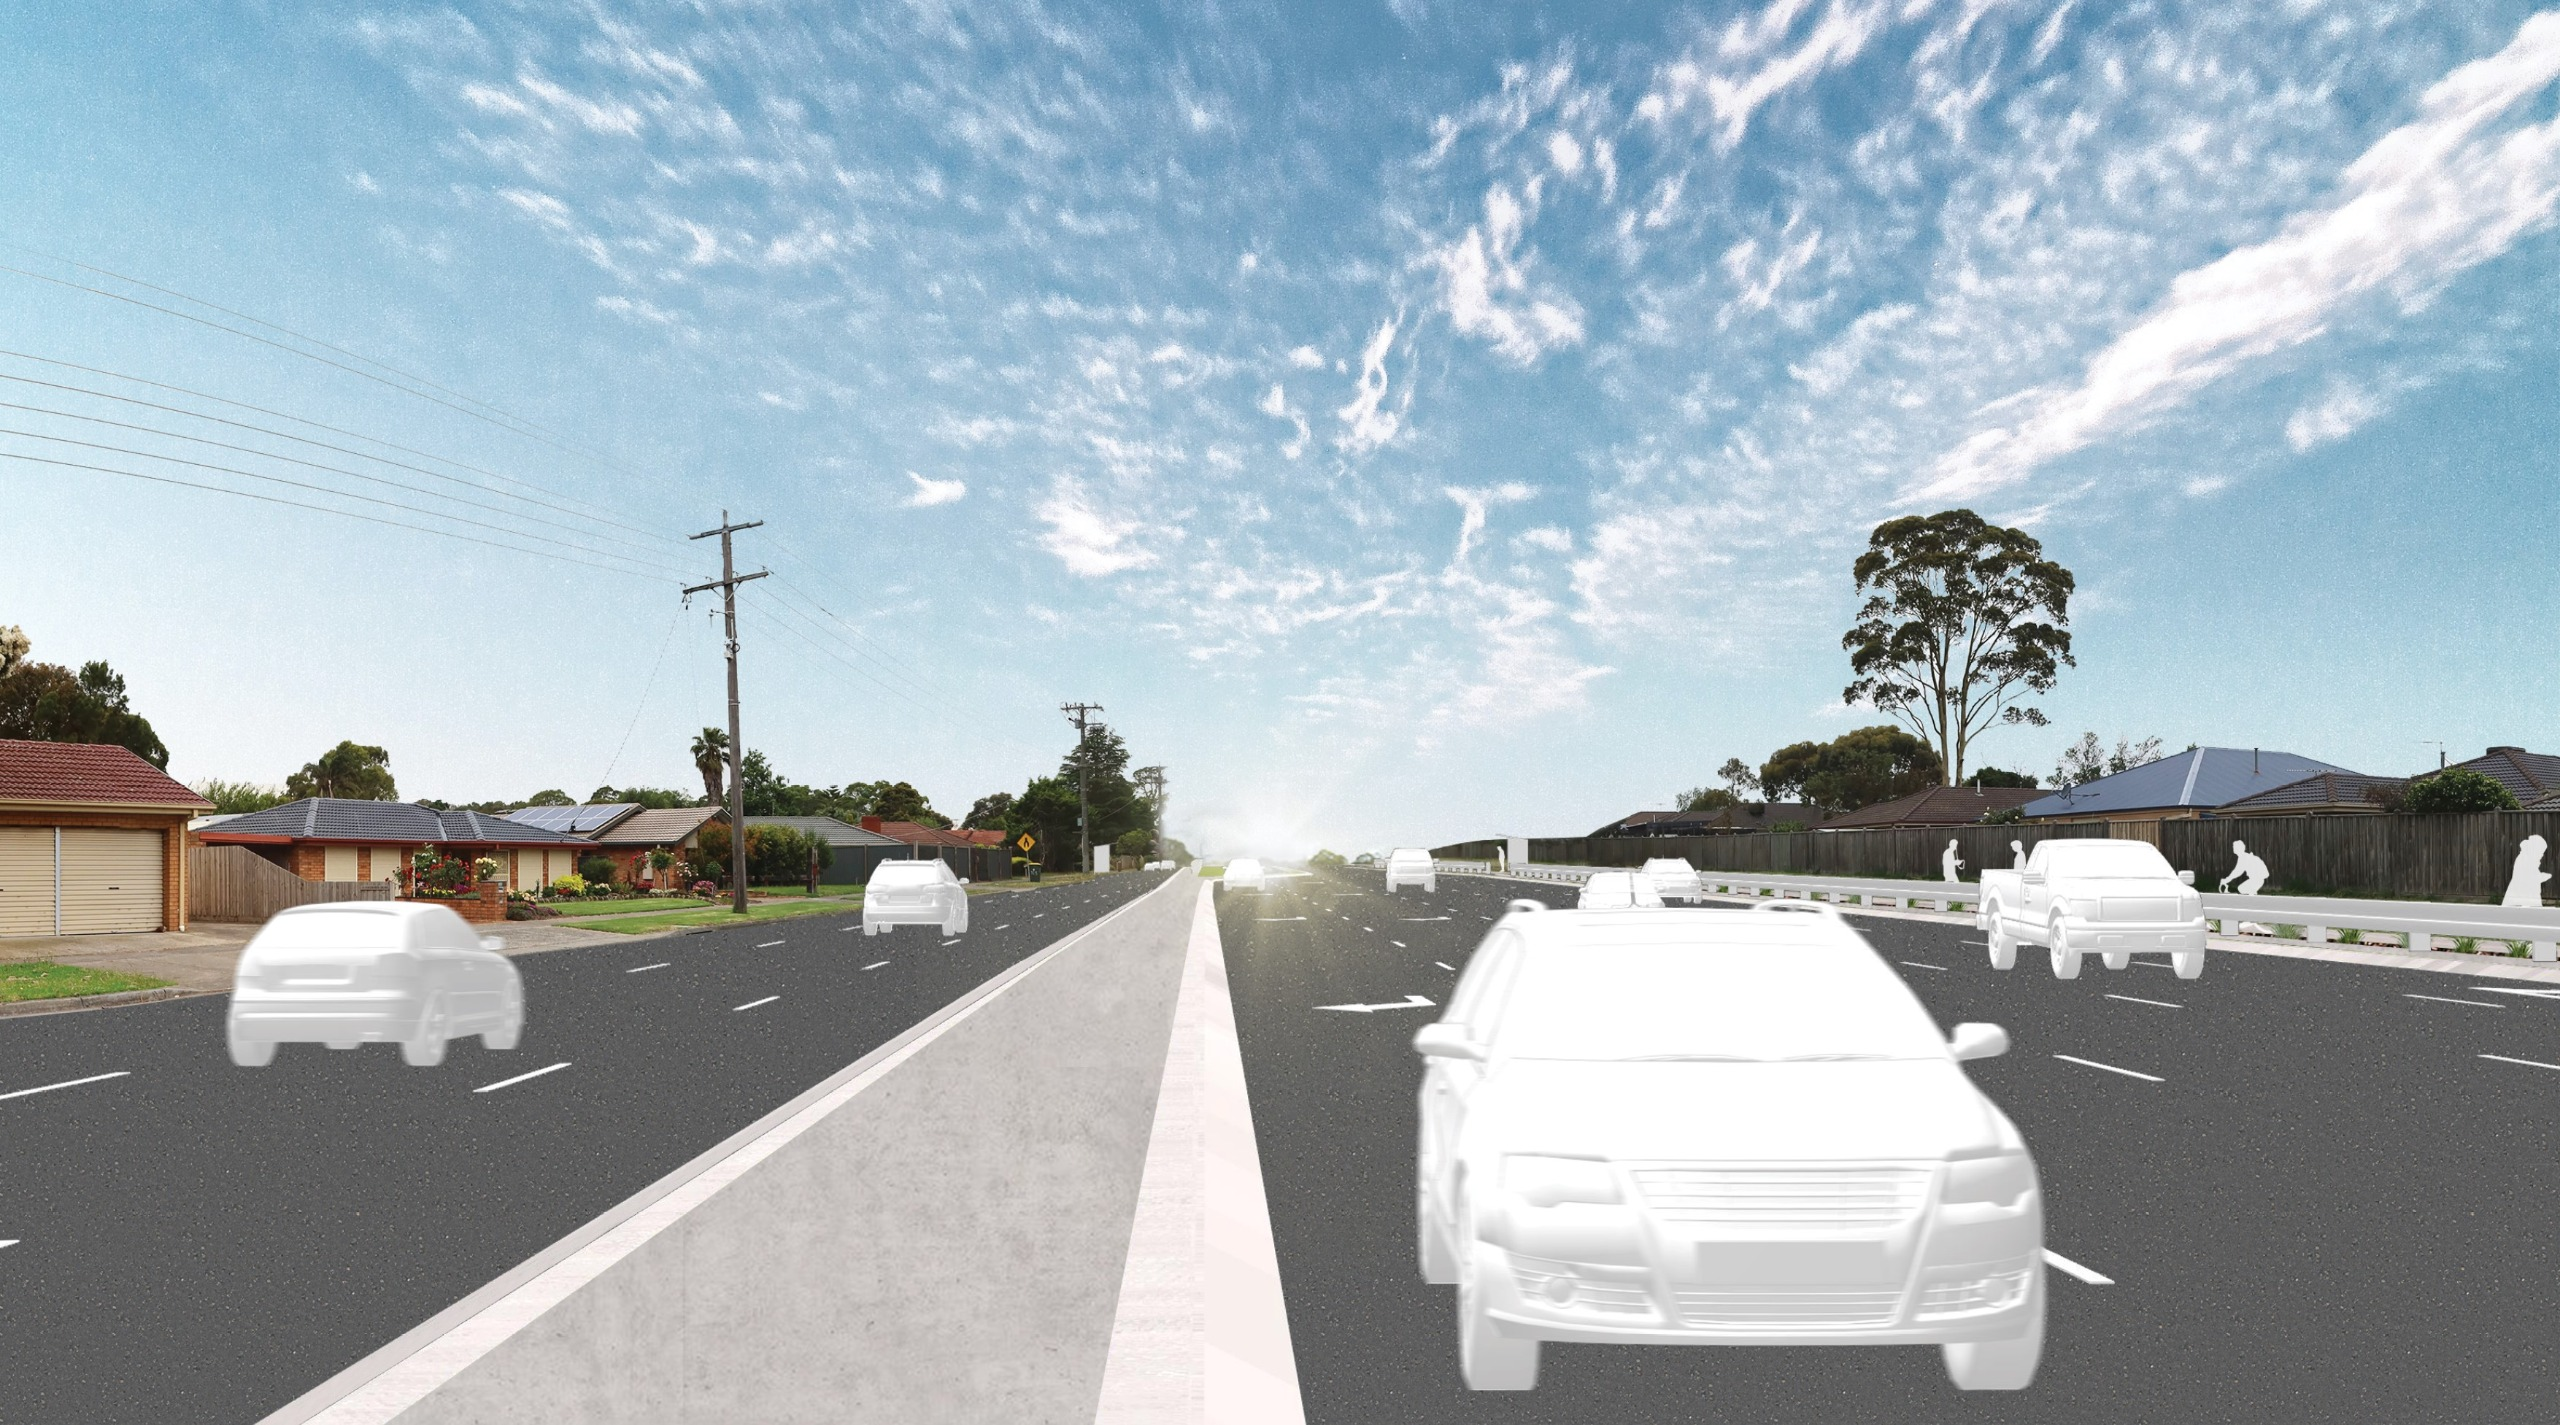 Artist's impression of cars driving through the McCormicks Road intersection 1 year after project completion